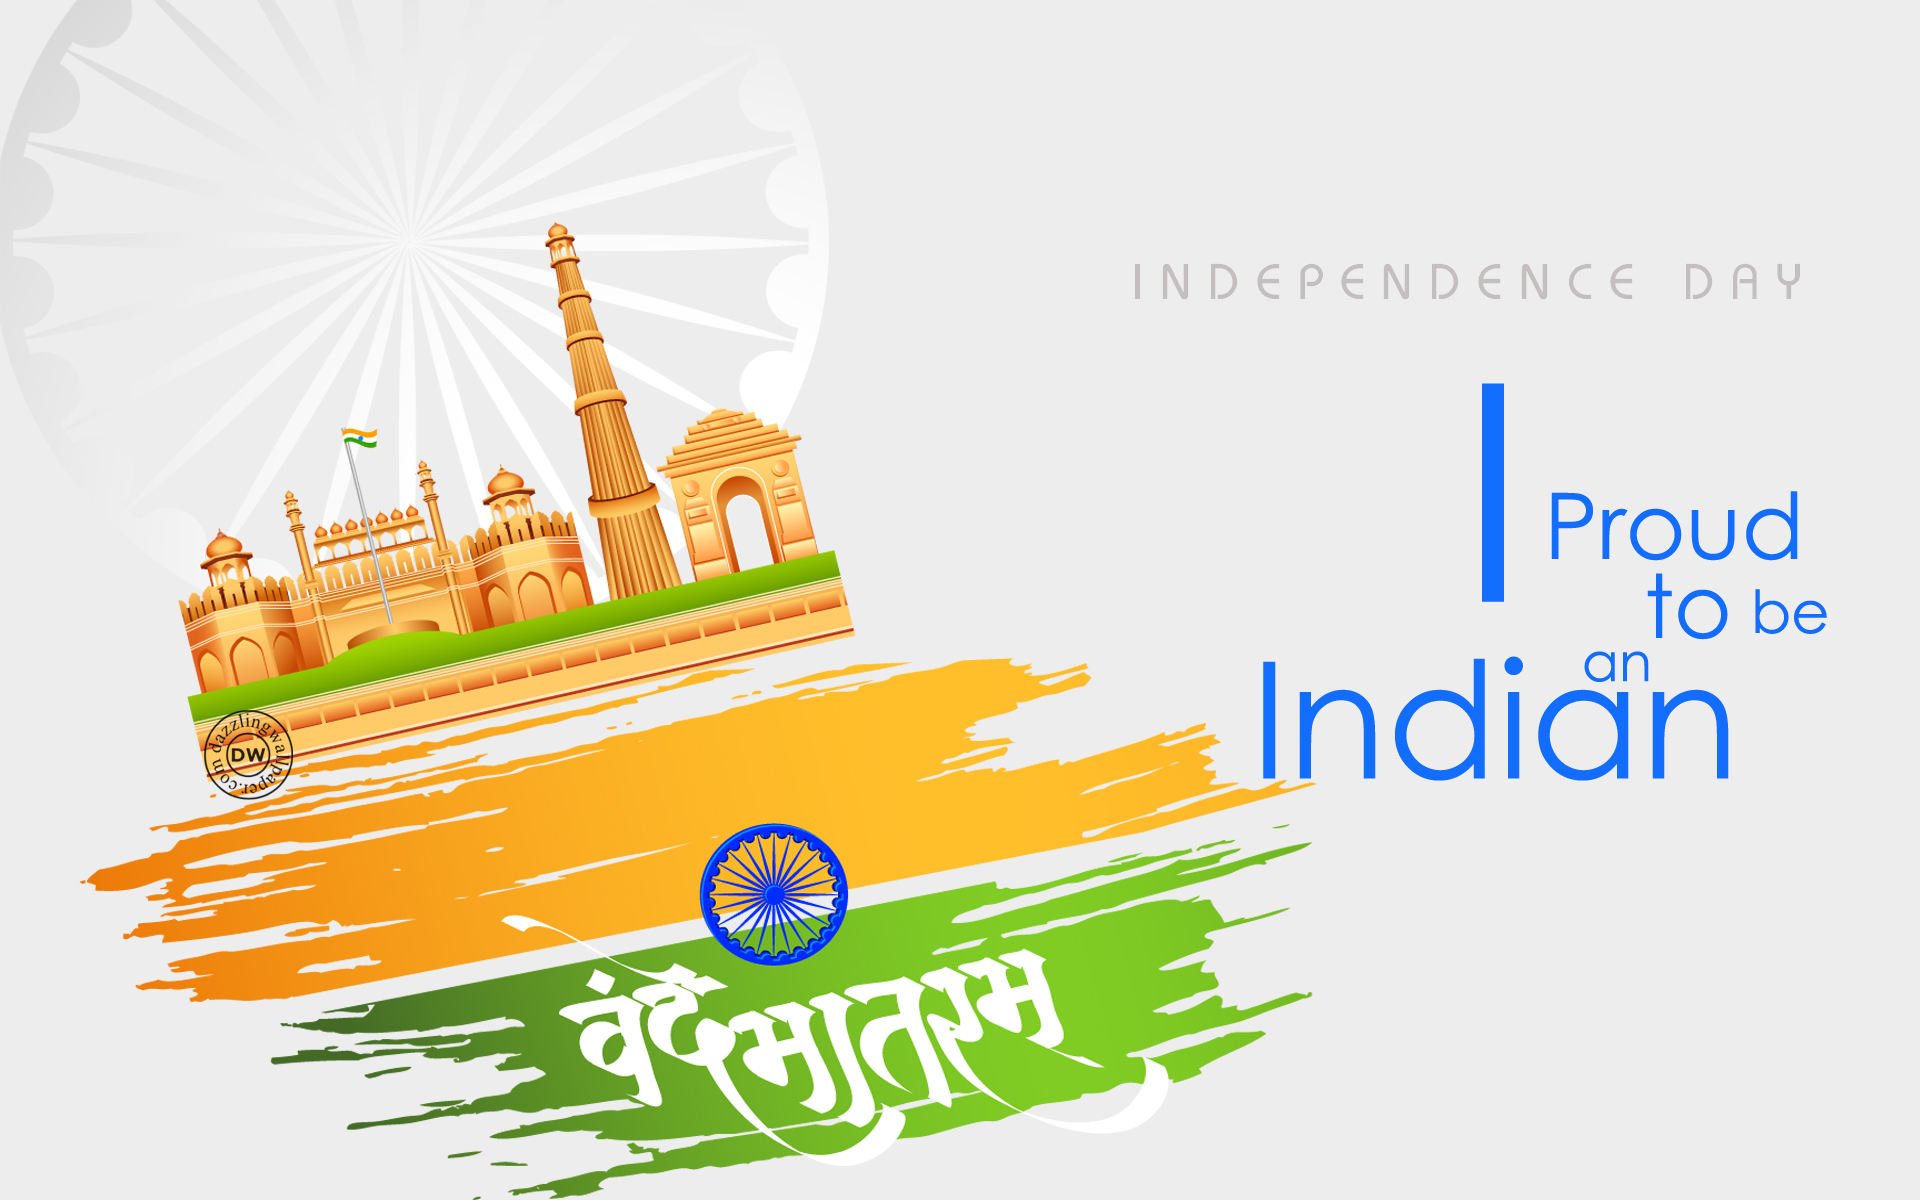 Proud to be an Indian | Old quotes, Bill gates, Bill gates quotes